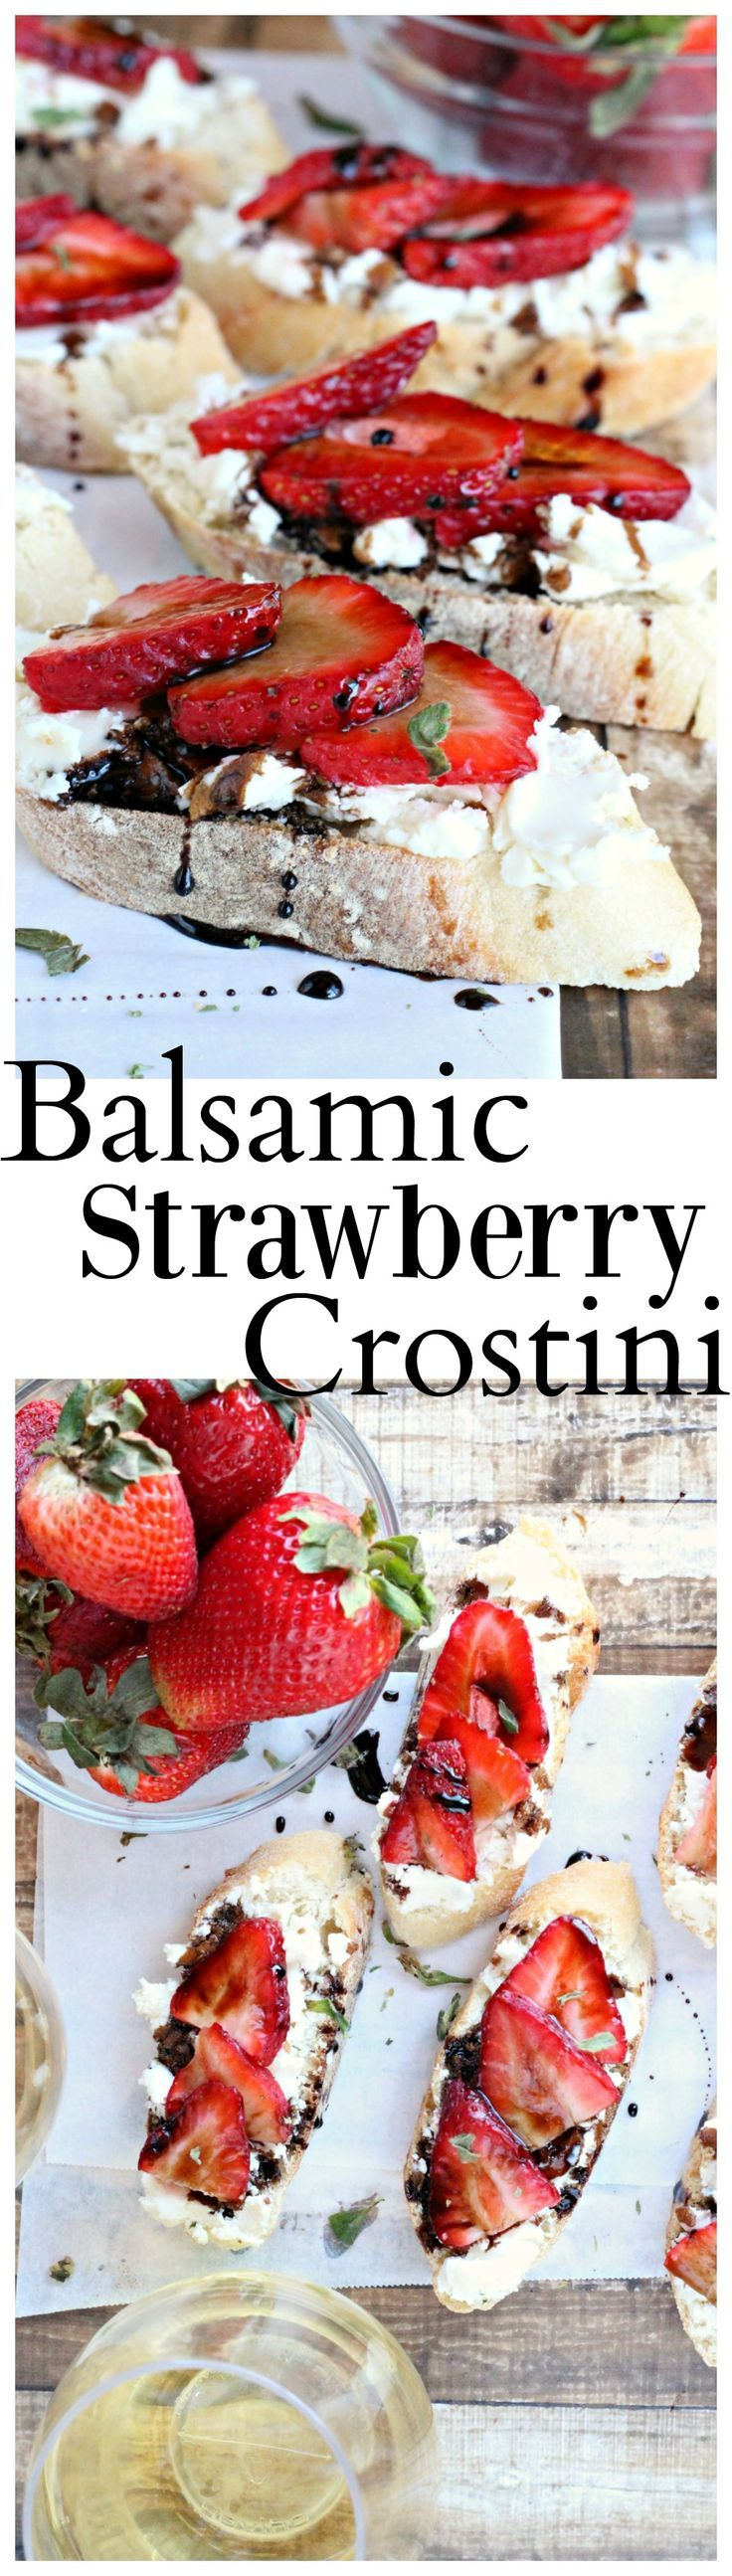 Crostini topped with goat cheese, sliced strawberries, and a drizzle of balsamic reduction.